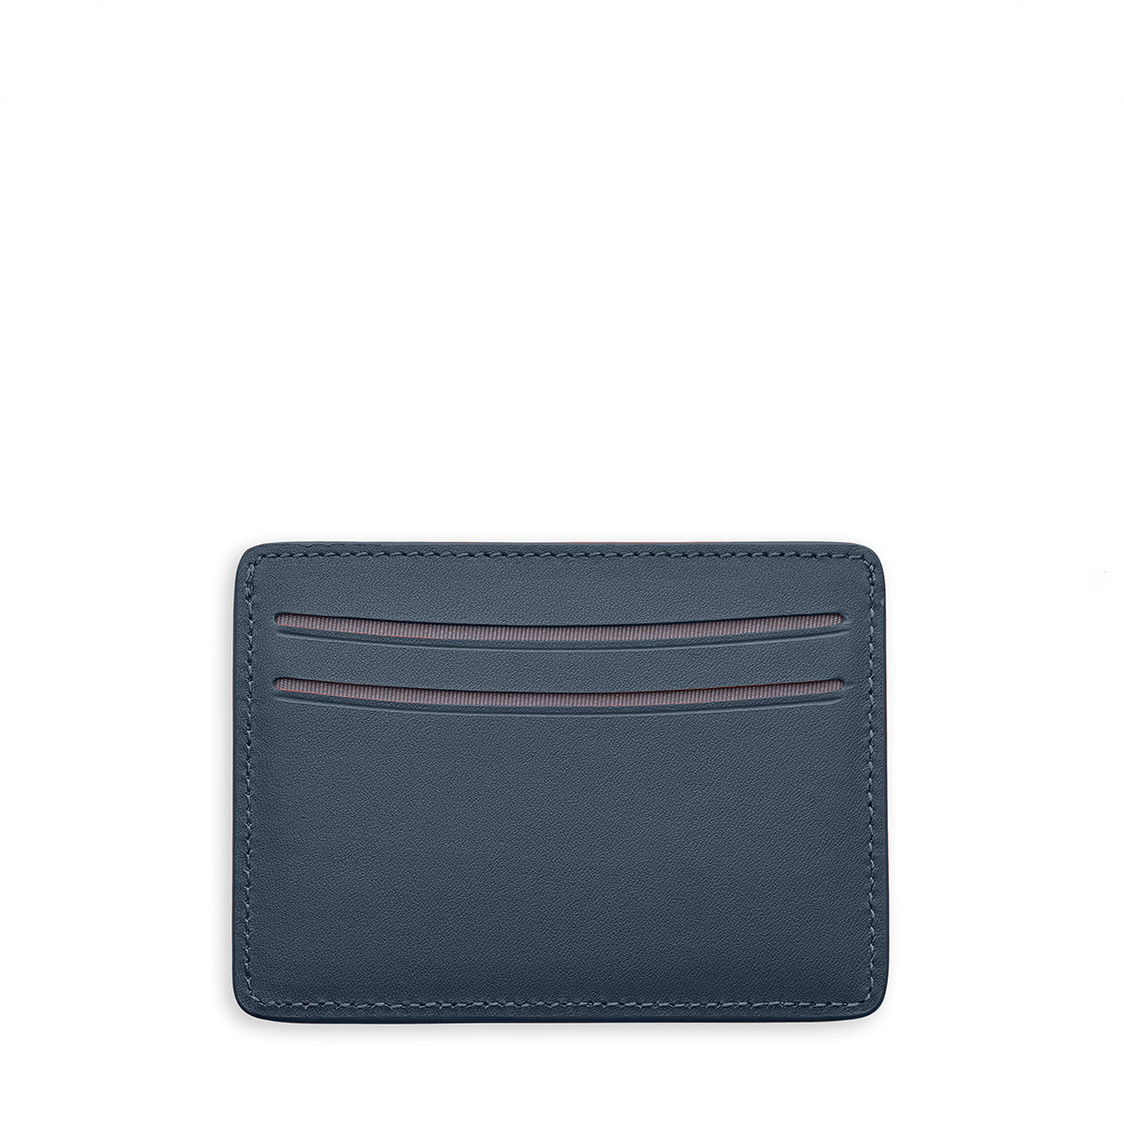 Kas Wallet - Navy Leather